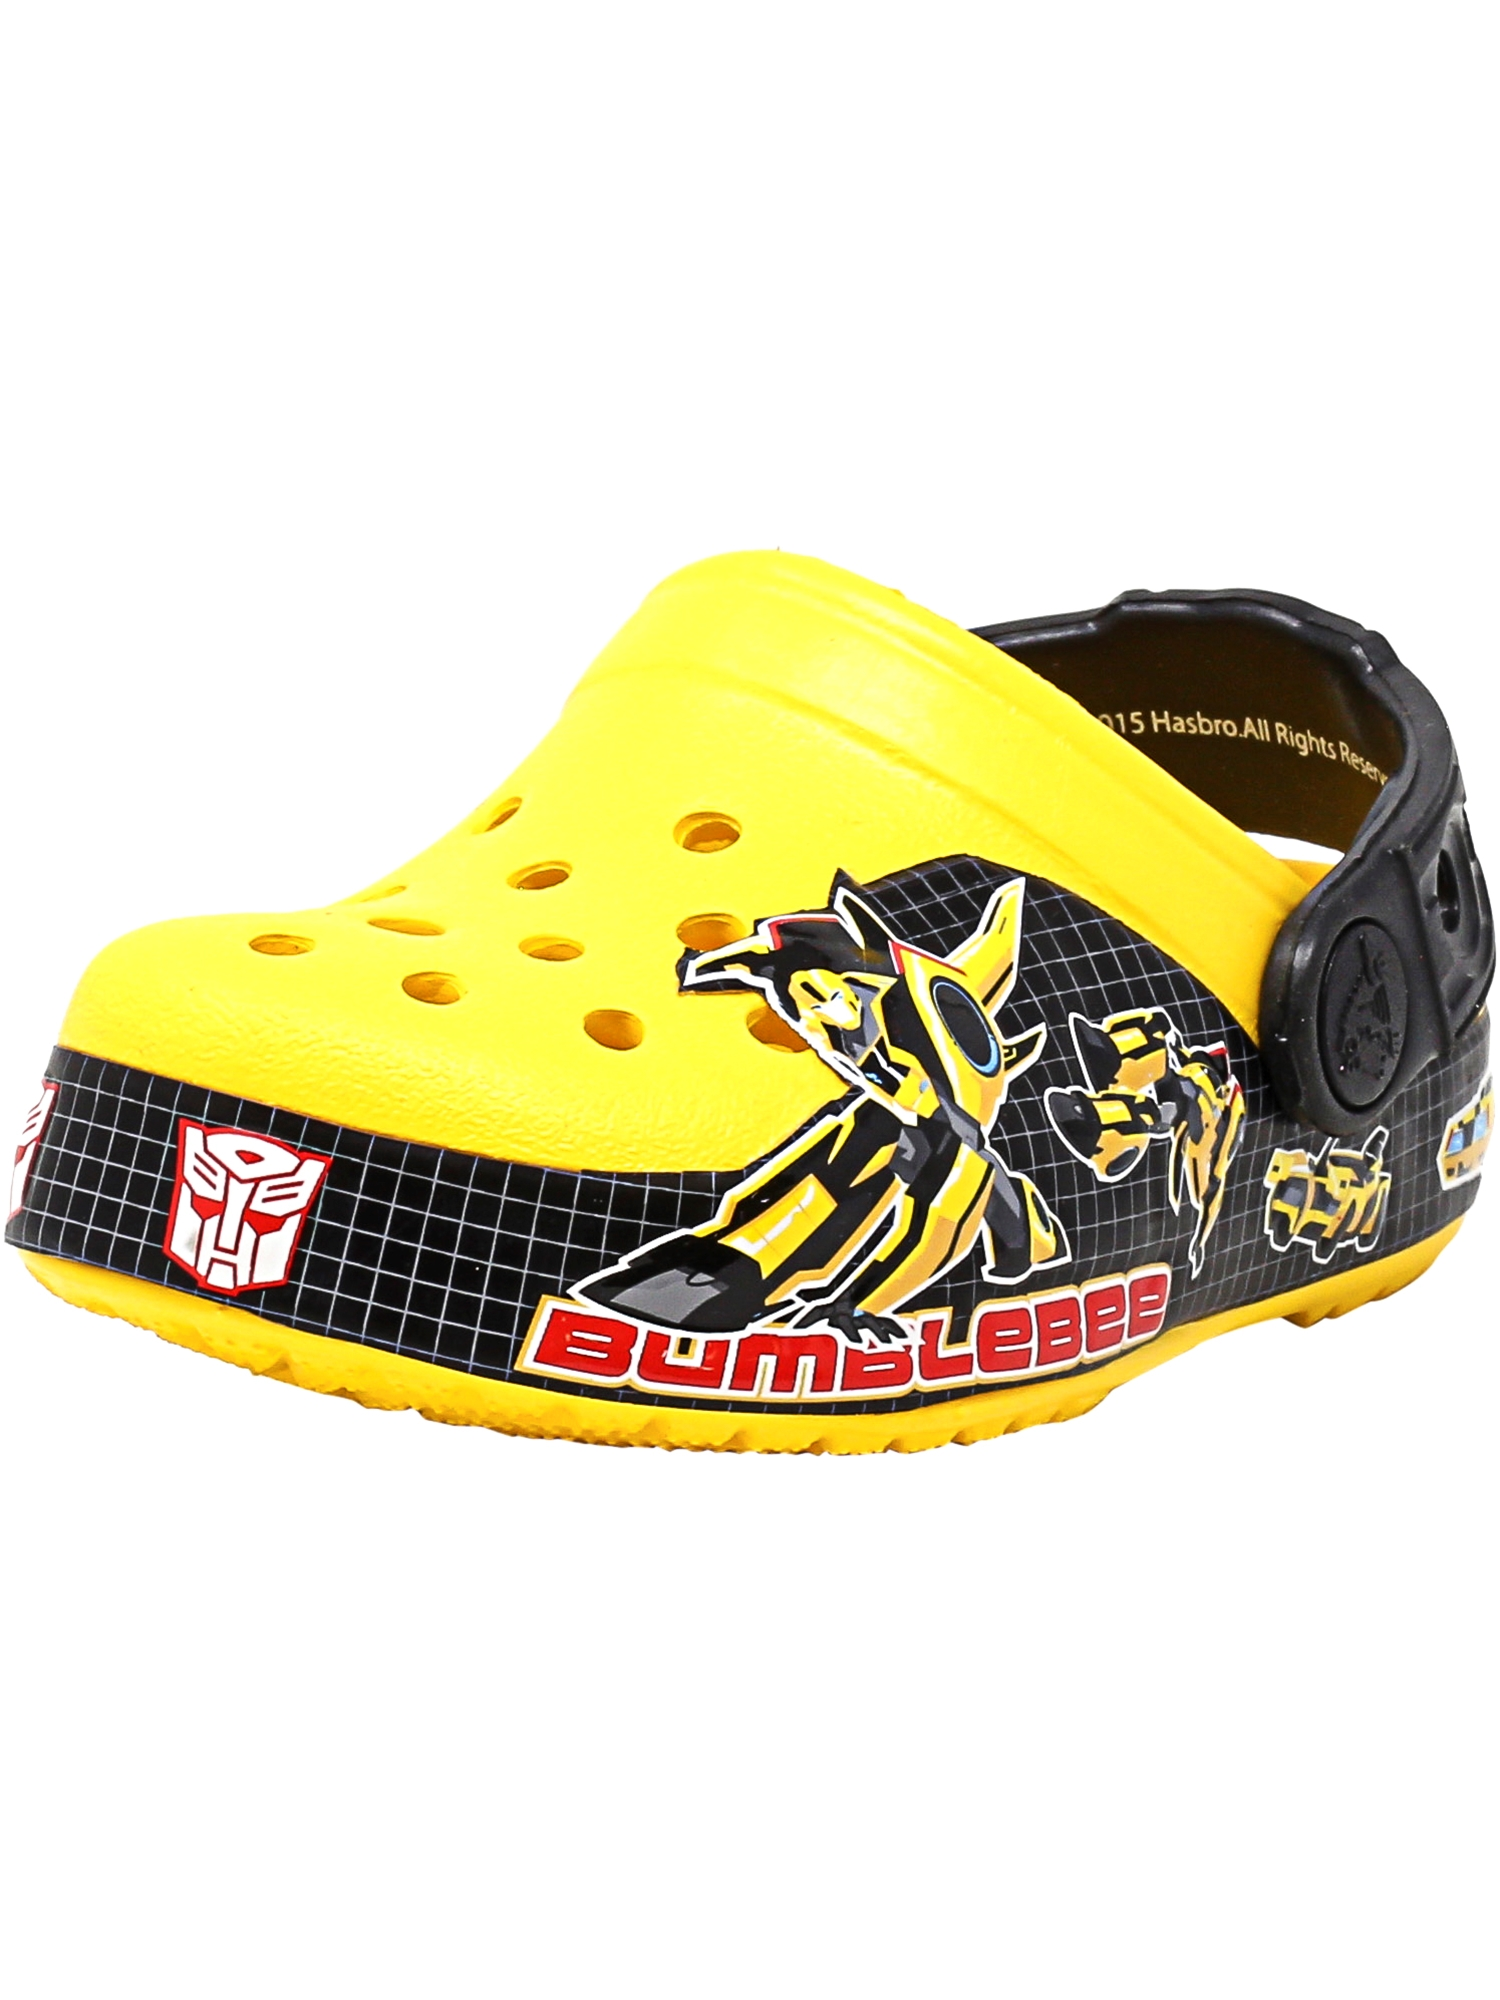 Crocs Cb Transformers Bumblebee Clog Yellow Clogs 8M by Crocs